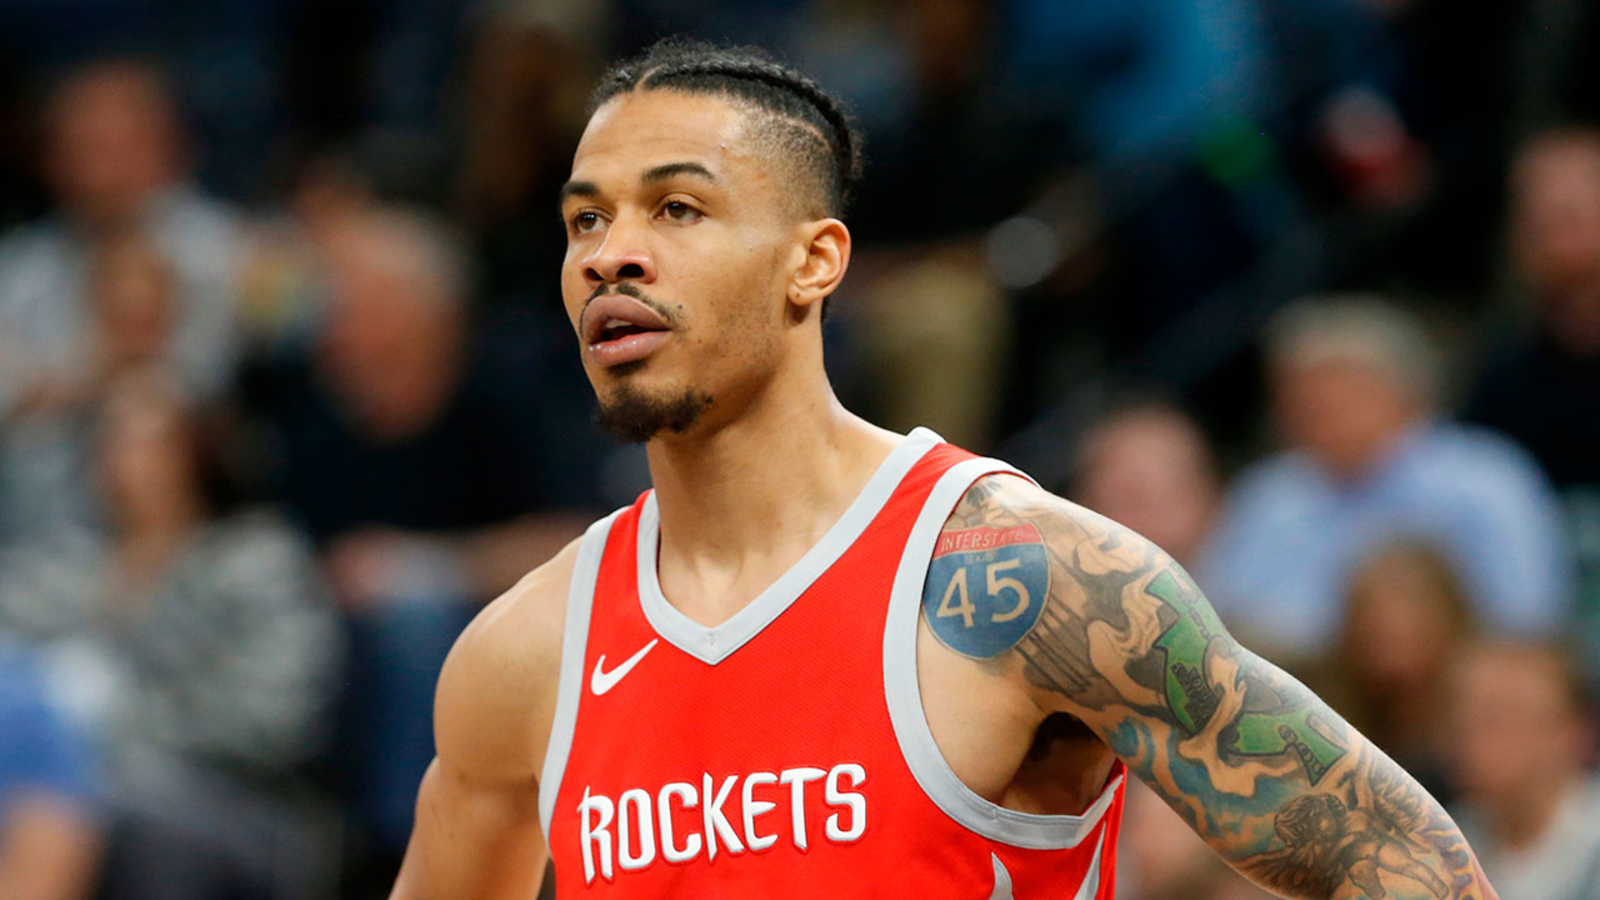 Rockets Gerald Green Is So Houston He Even Has An I 45 Tattoo Abc13 Houston